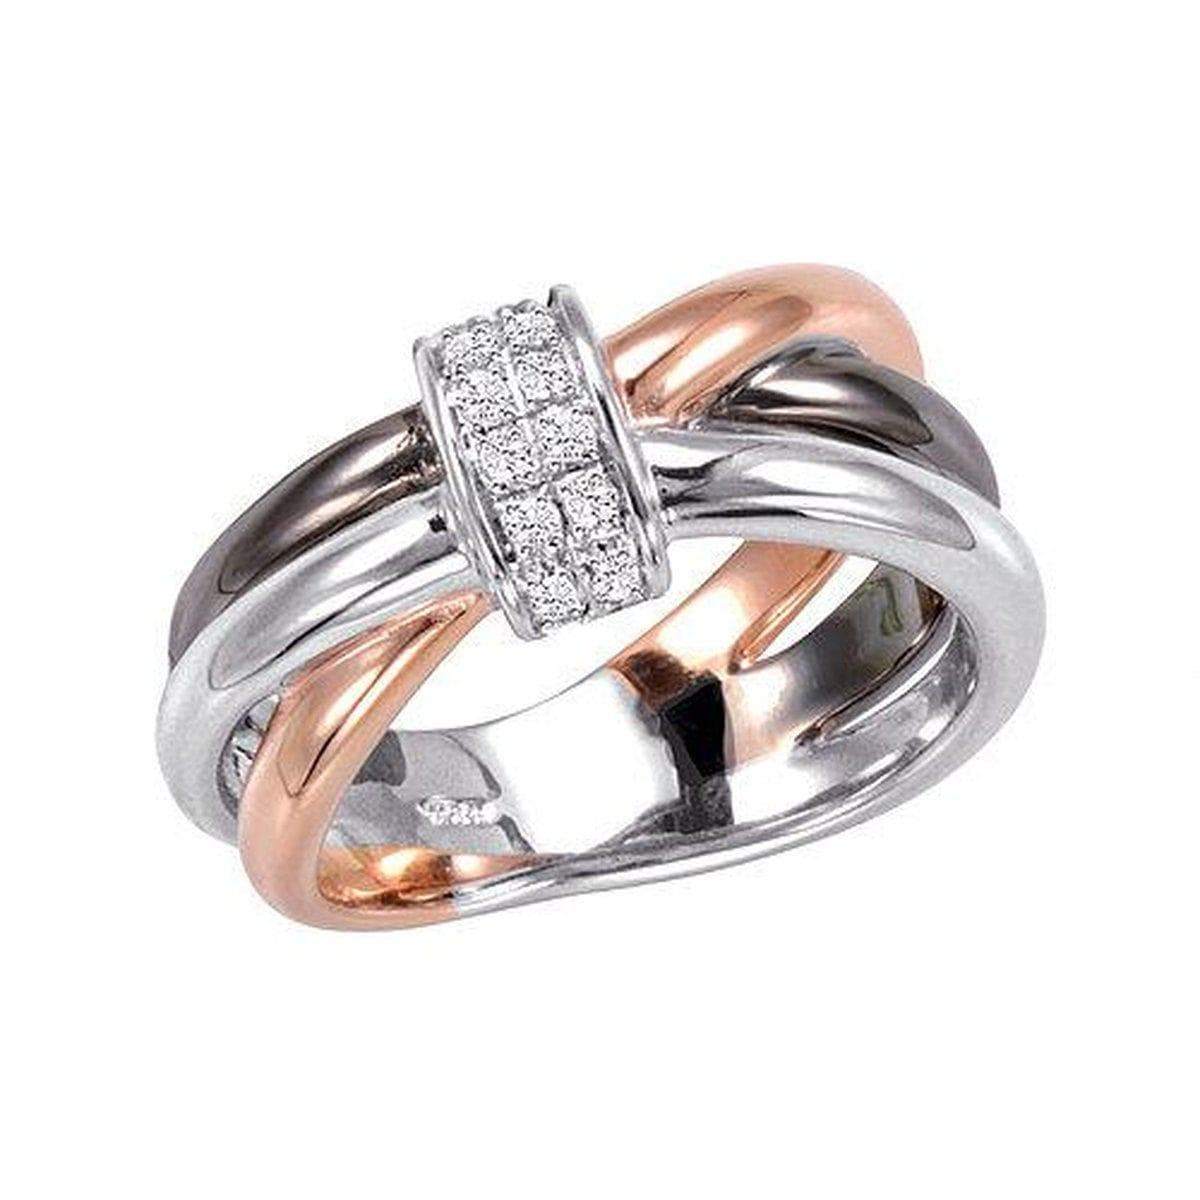 Rose Gold Plated Sterling Silver White Sapphire Ring - 42/85727-Breuning-Renee Taylor Gallery